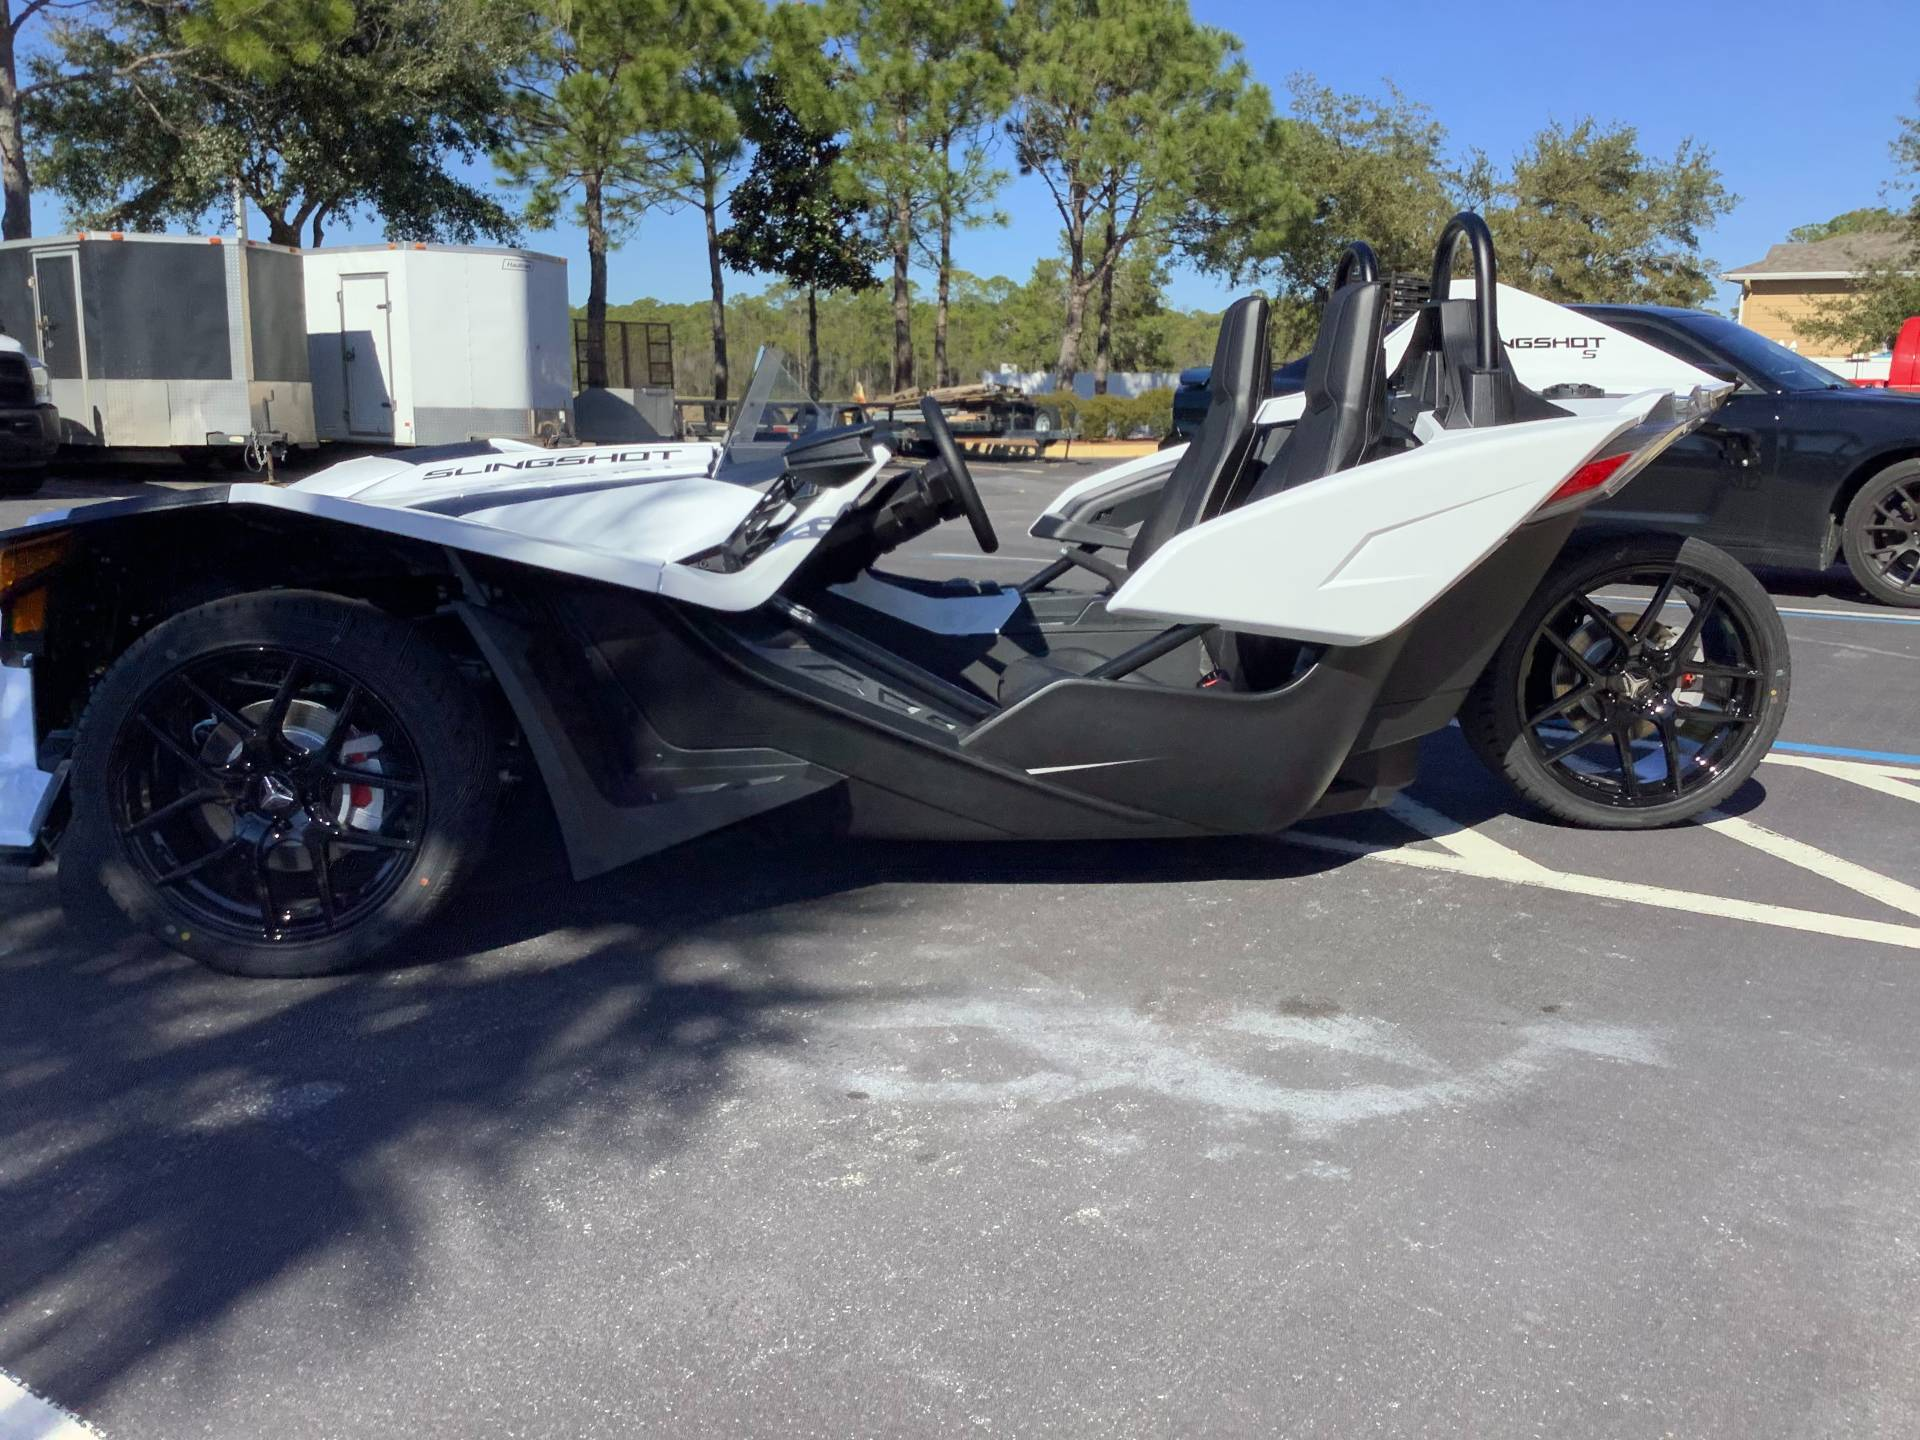 2021 Polaris SLINGSHOT S TECH PACKAGE 1 in Panama City Beach, Florida - Photo 4